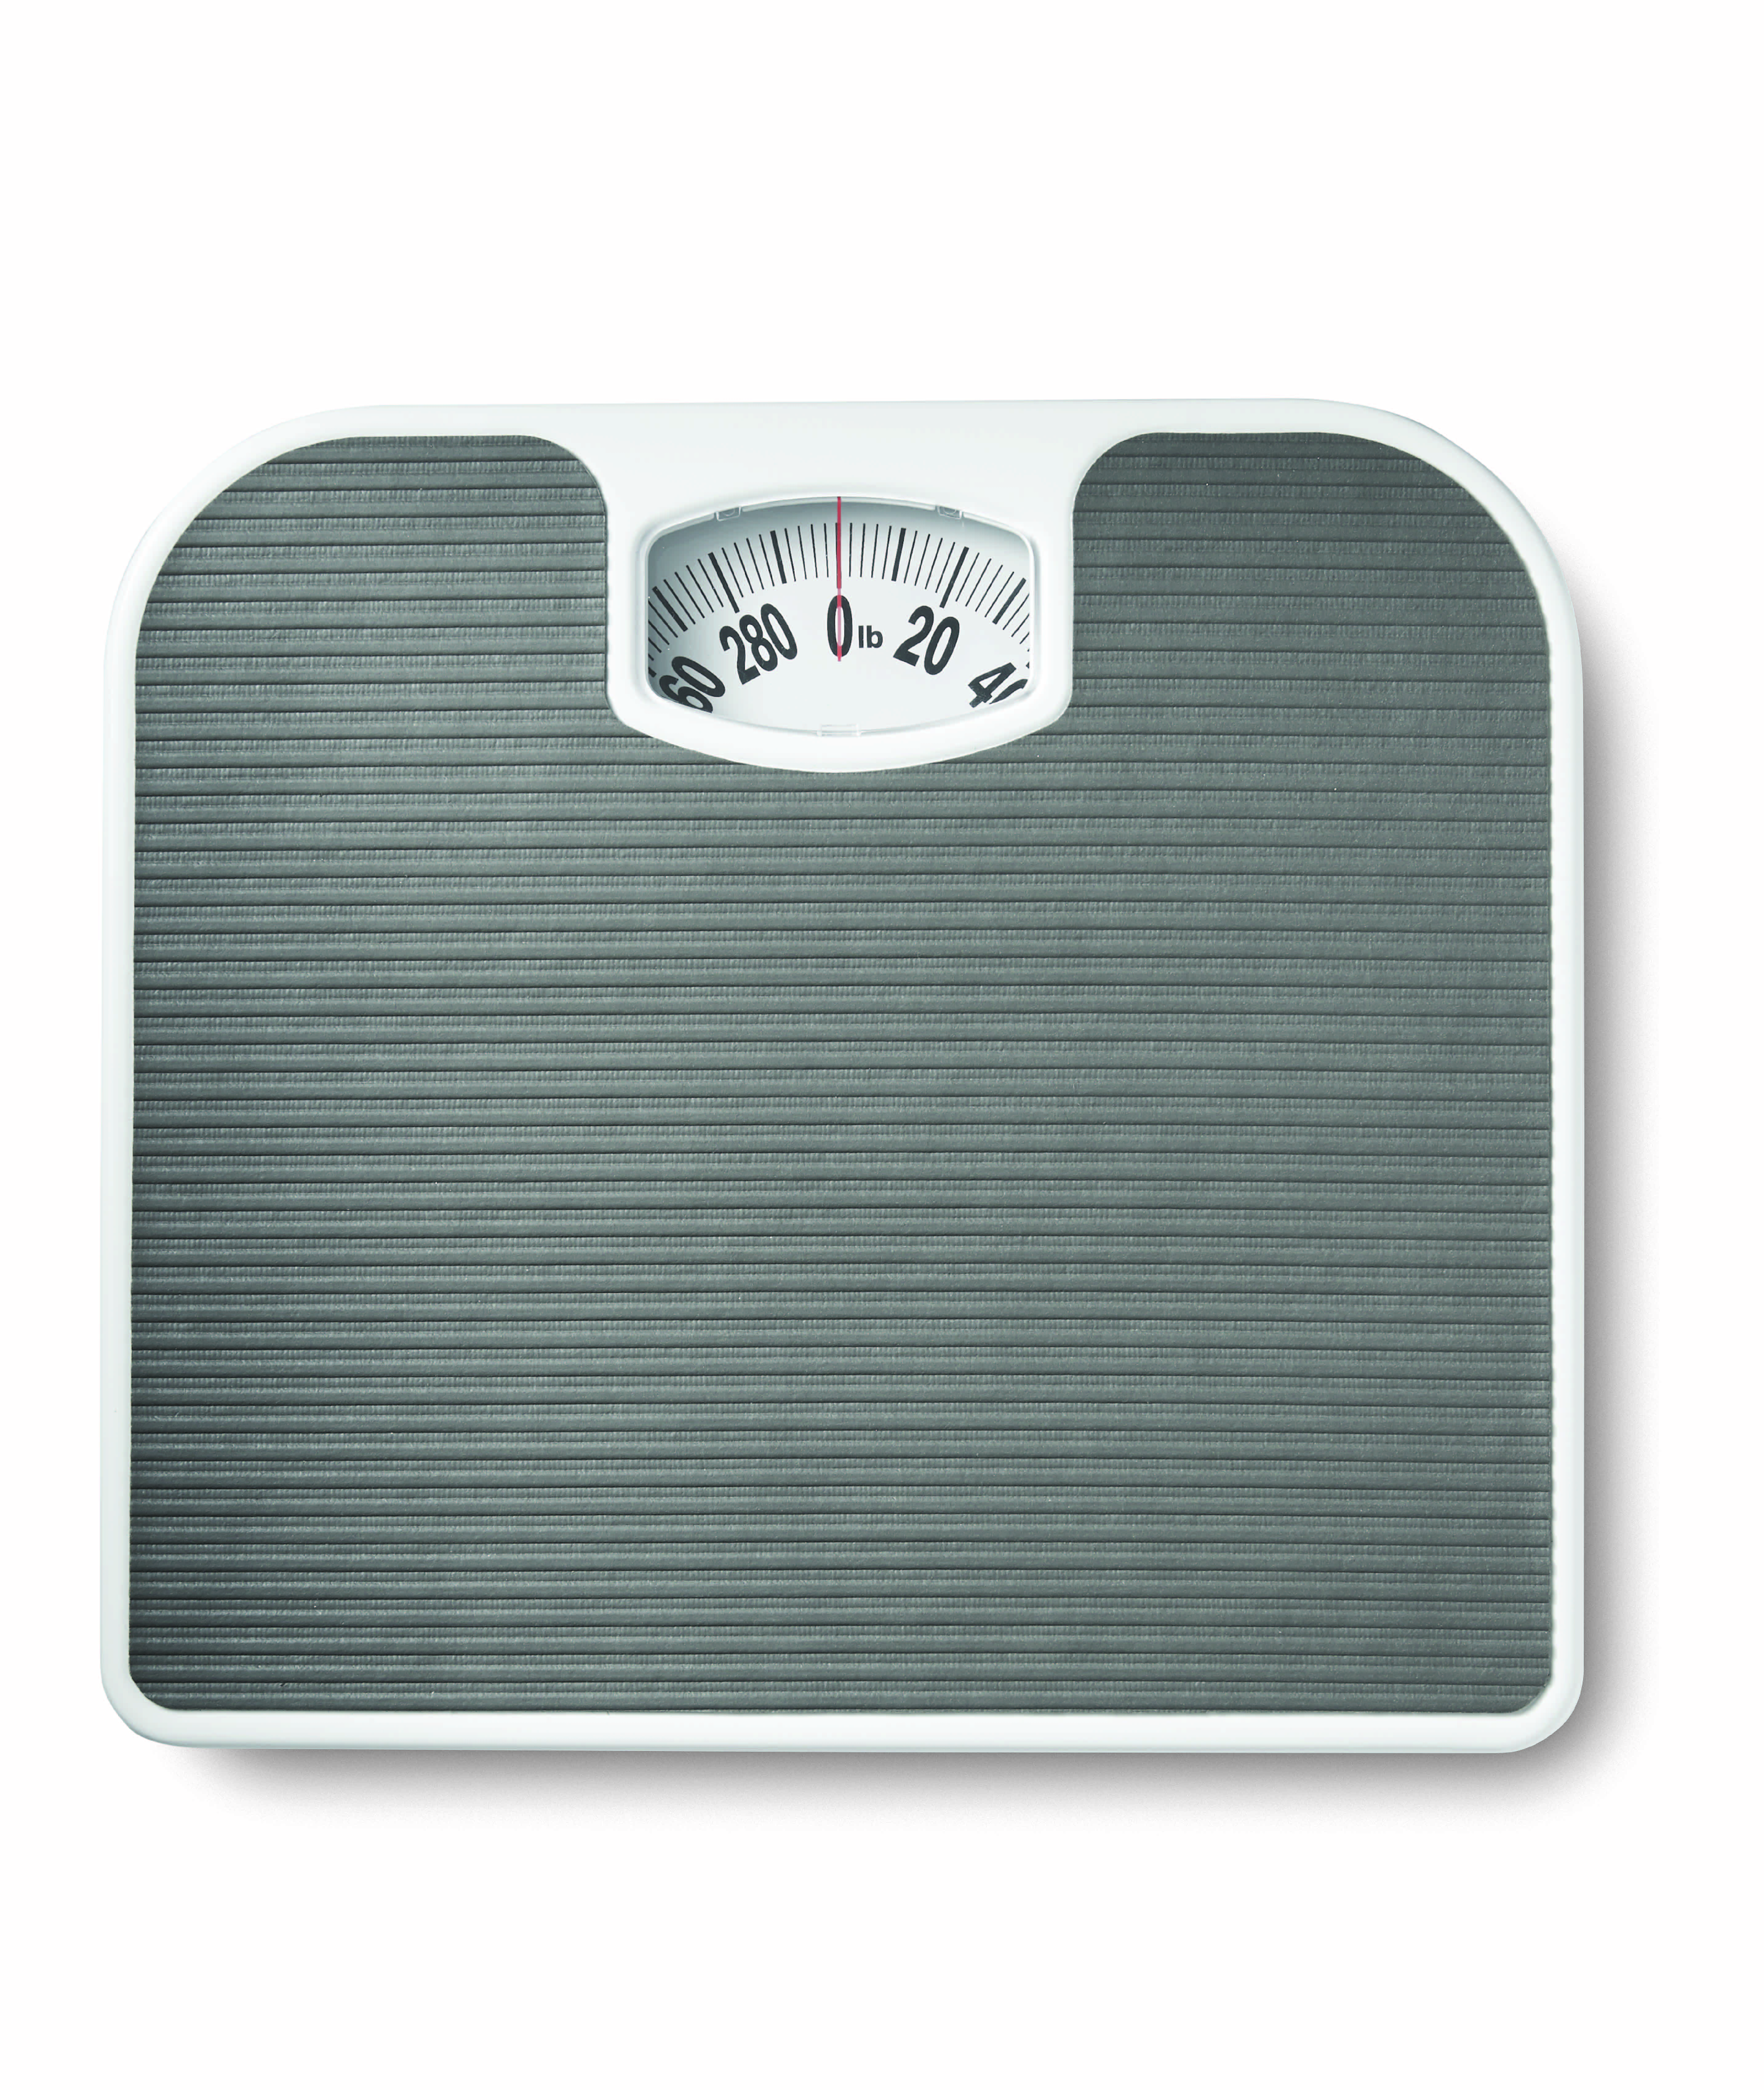 Mainstays Analog Bathroom Scale, Dial Body Scale, White